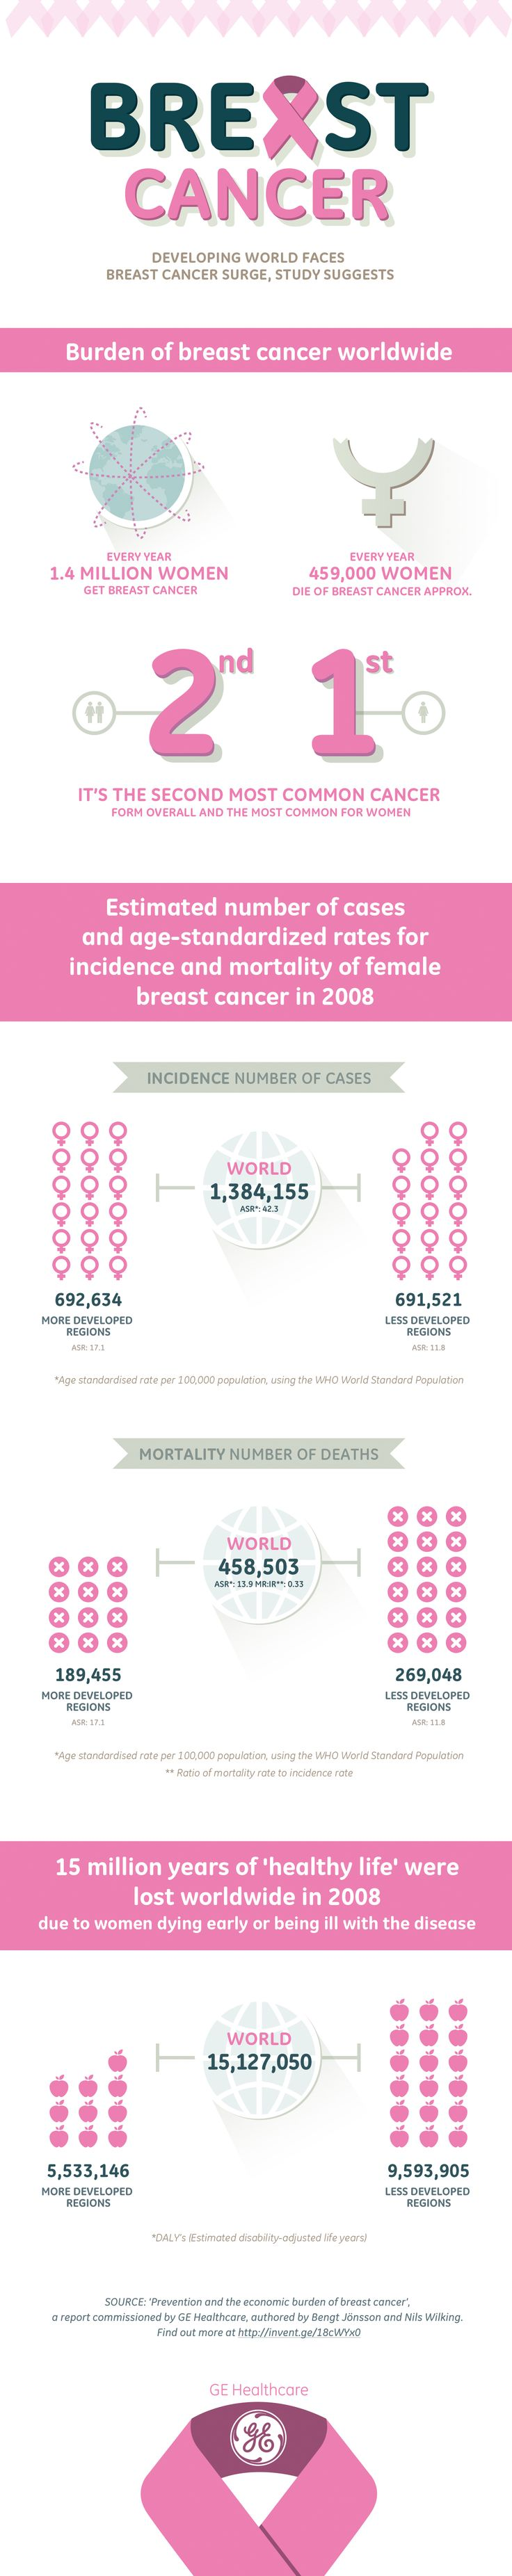 Rising #breastcancer incidence & mortality represent a growing threat for the developing world, study suggests invent.ge/18cWYx0 #infographic